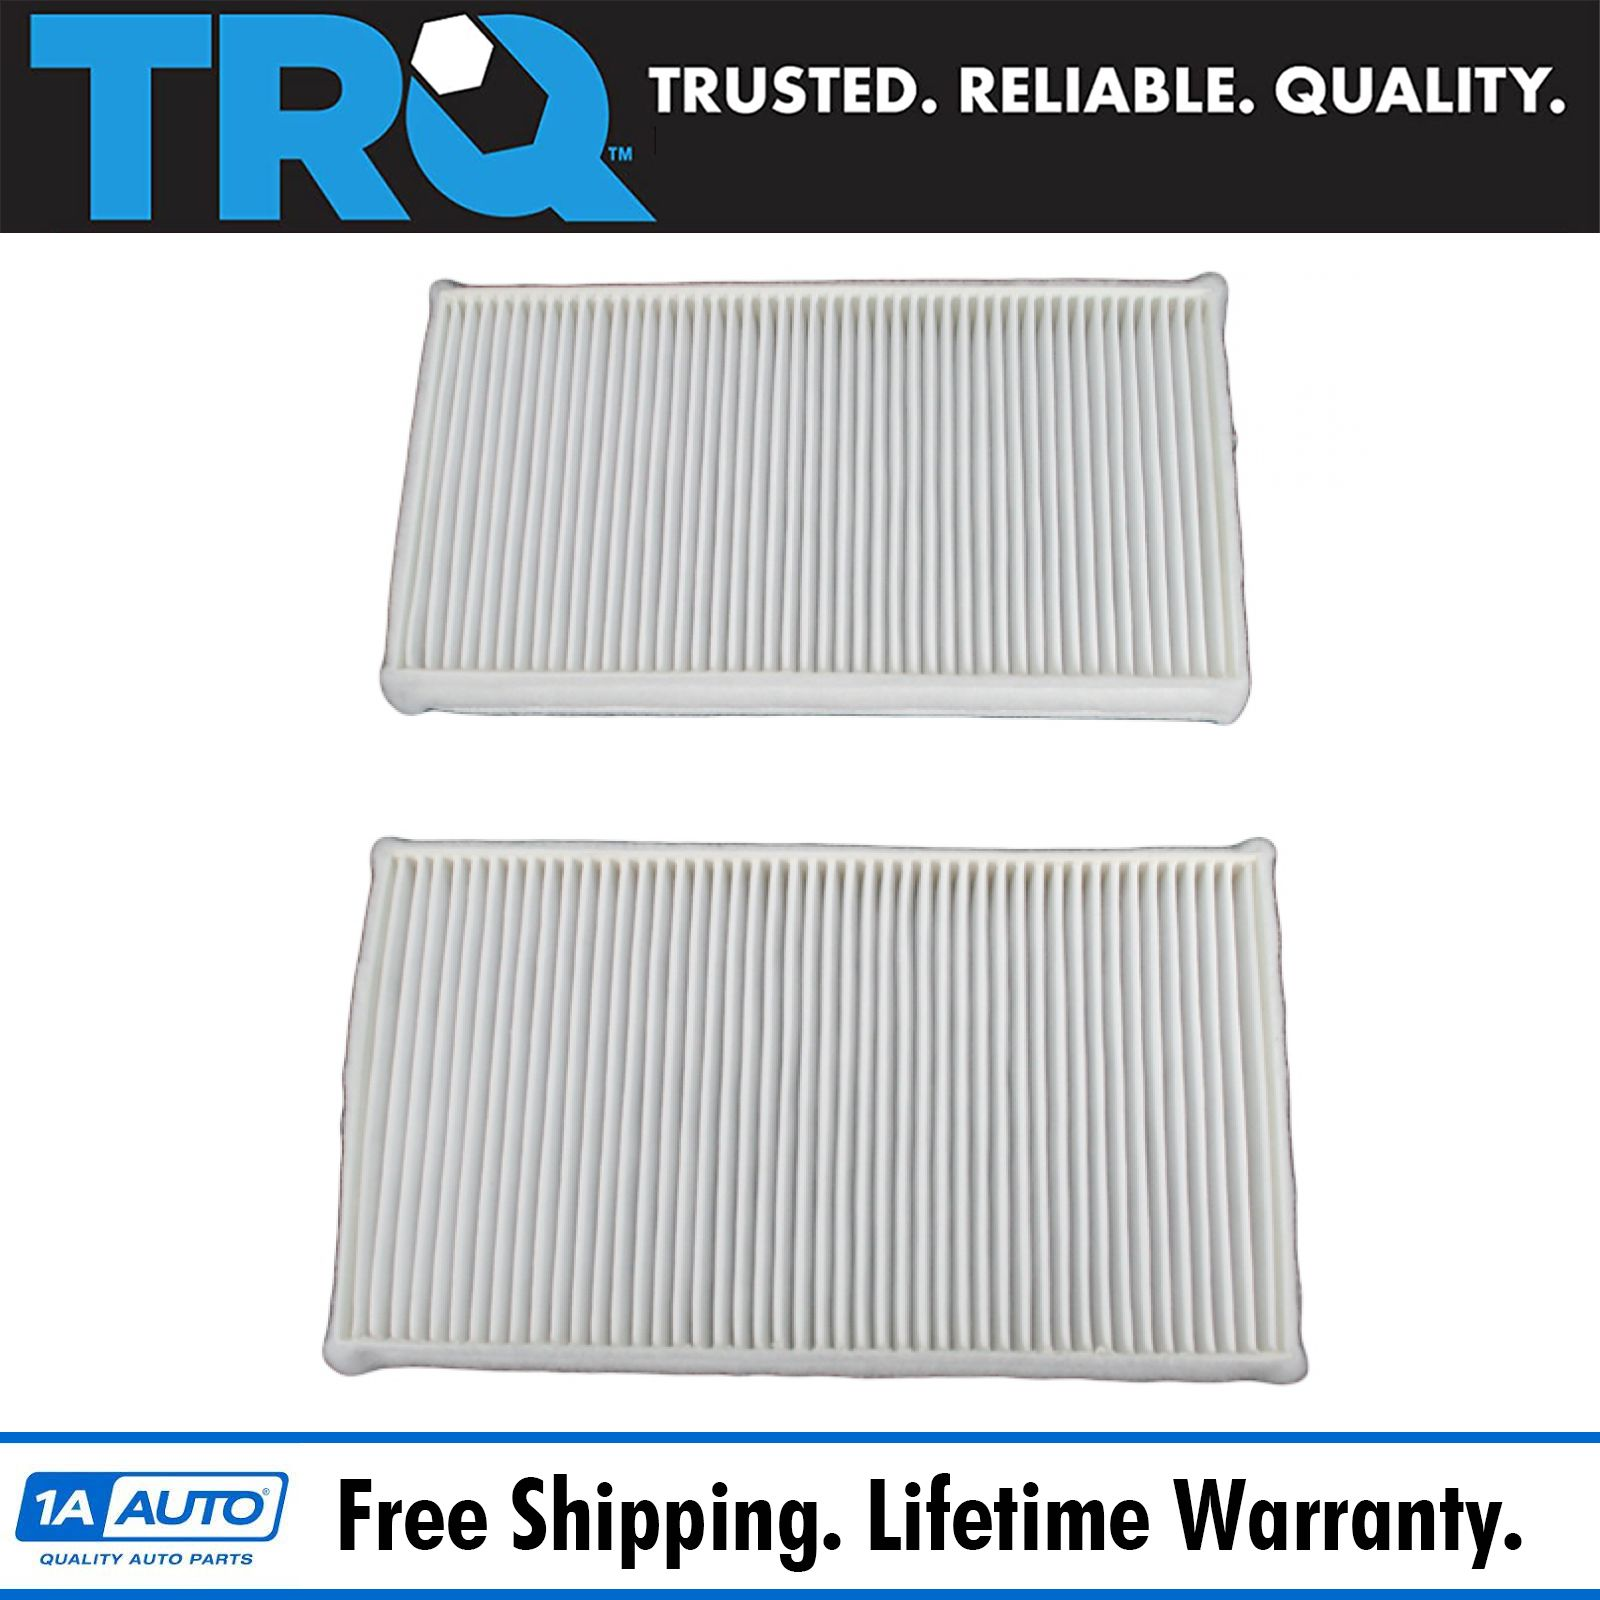 AC Delco CF104 Cabin Air Filter Pair Set of 2 for Chevy GMC Cadillac Truck SUV